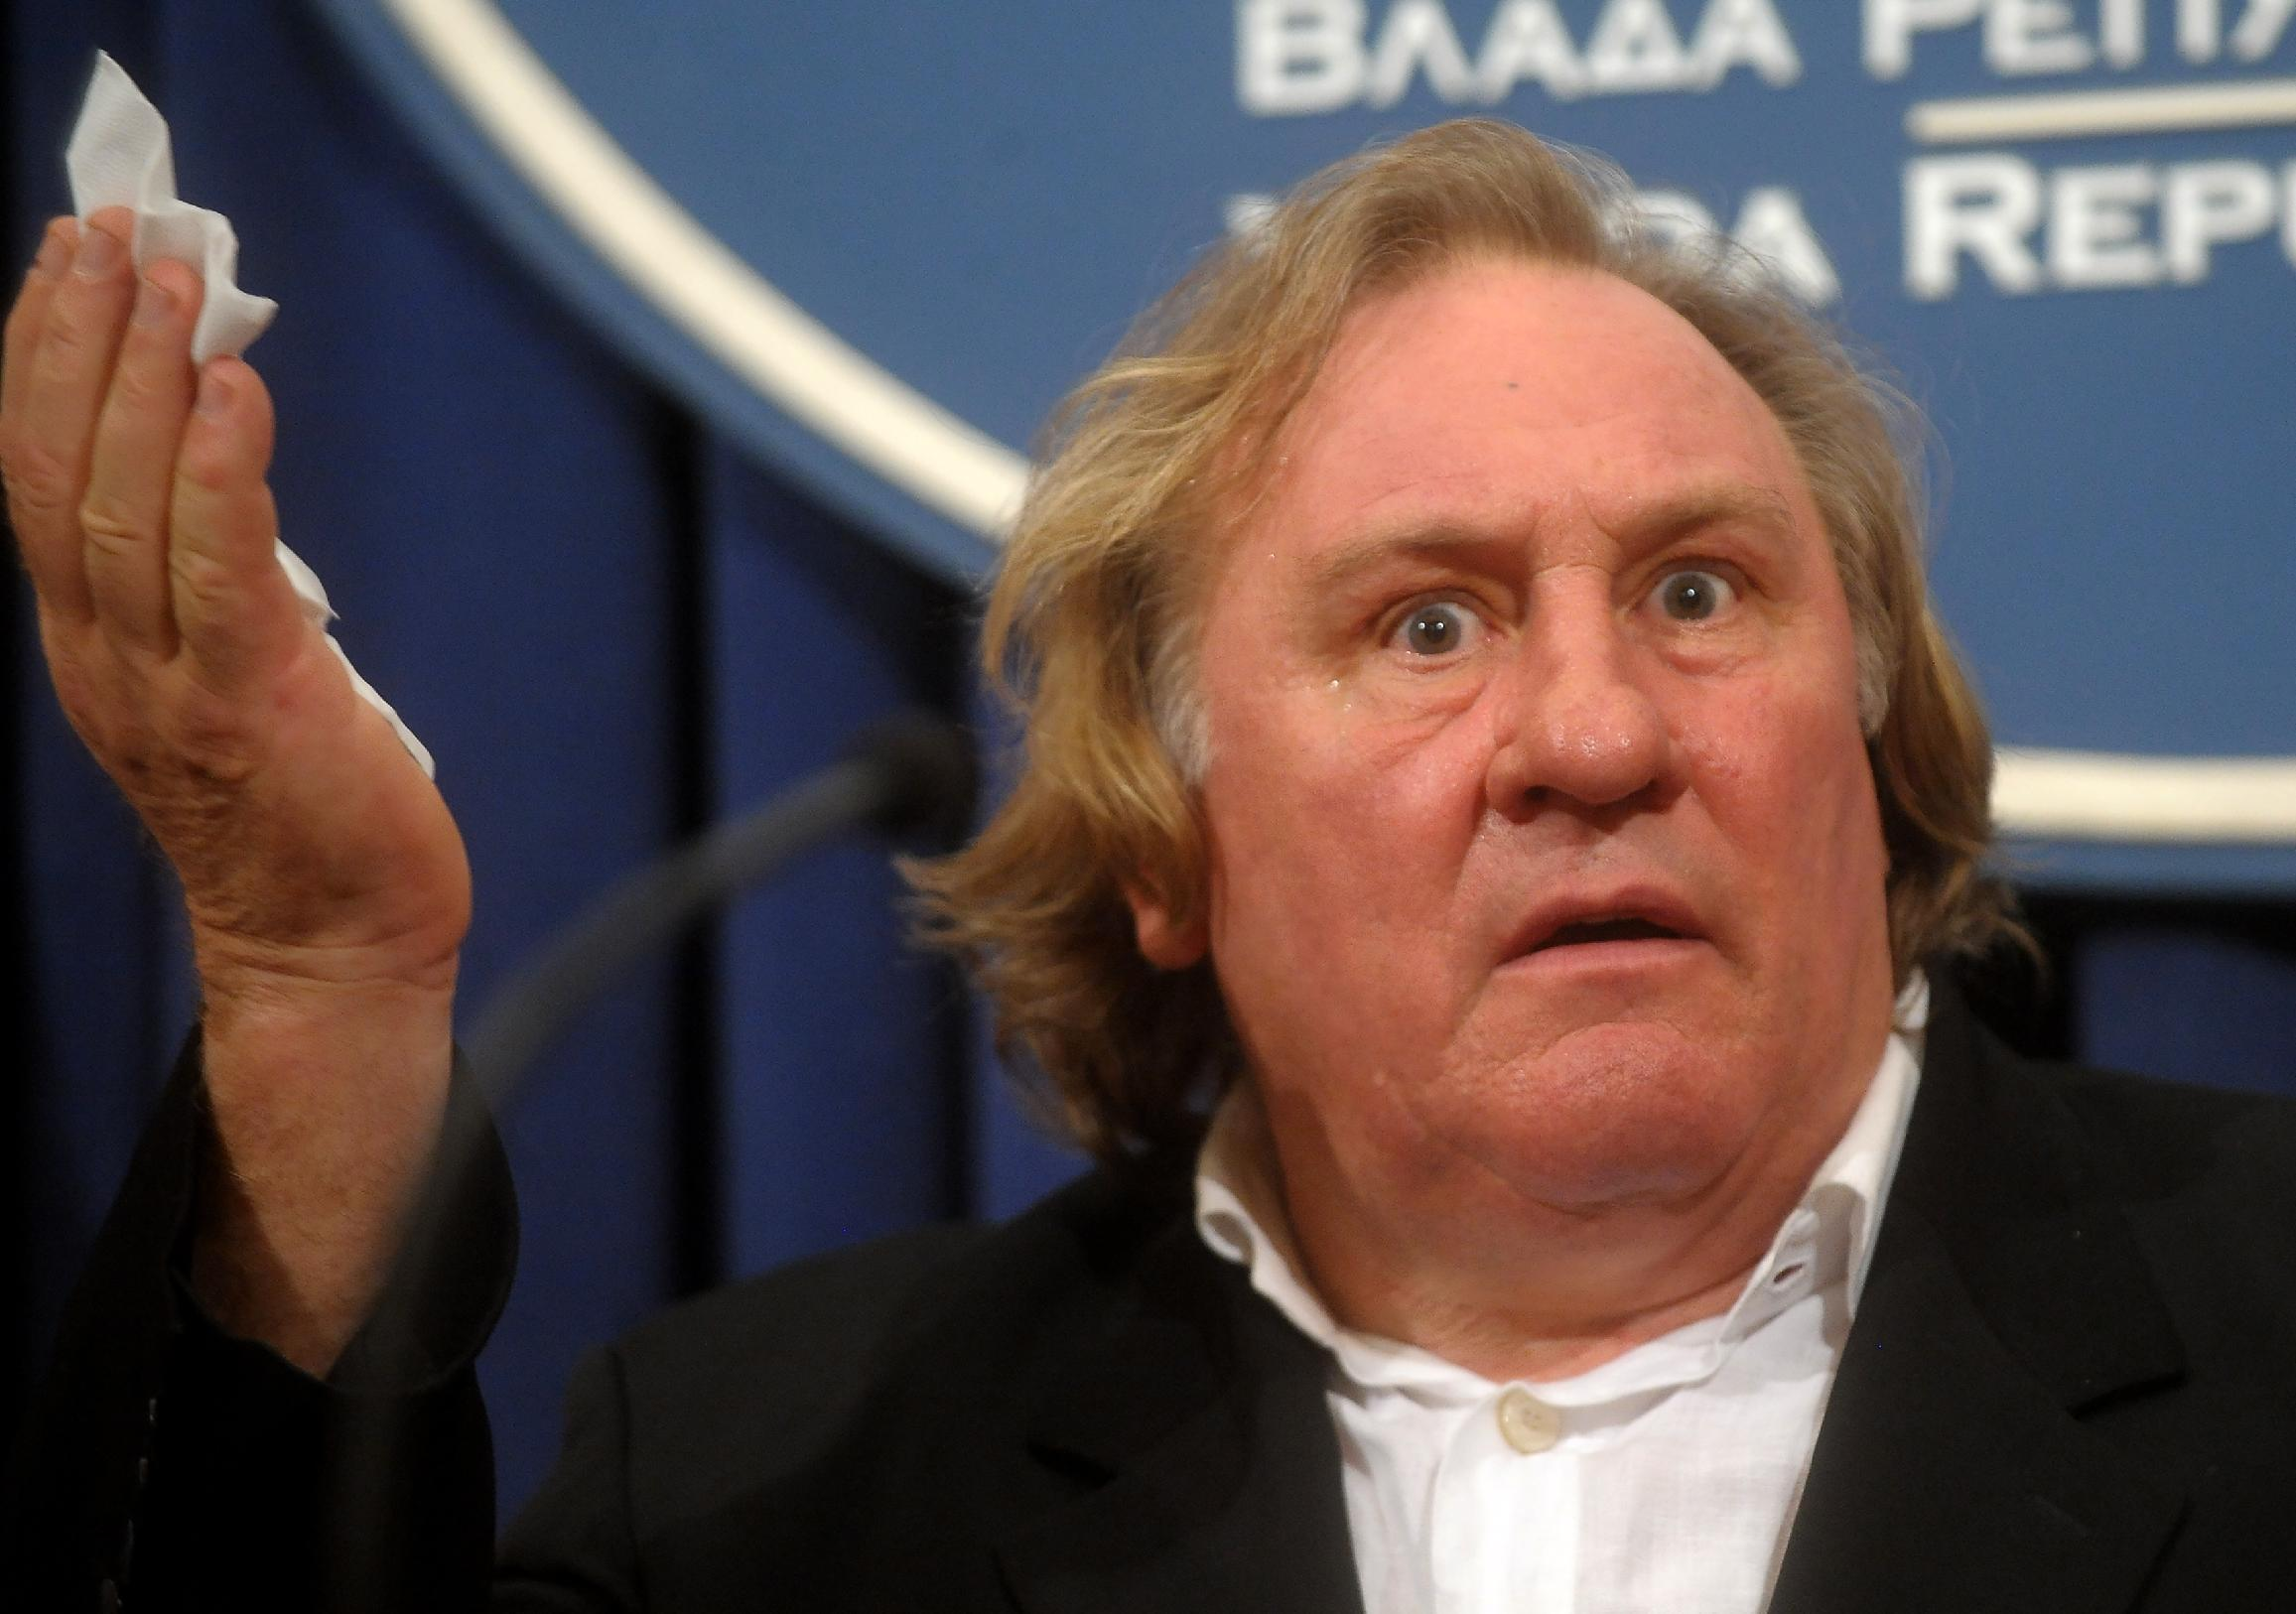 Russian citizen and actor Gerard Depardieu reacts during a press conference after talks with Serbian Prime Minister Aleksandar Vucic in Belgrade on September 4, 2014 (AFP Photo/Alexa Stankovic)